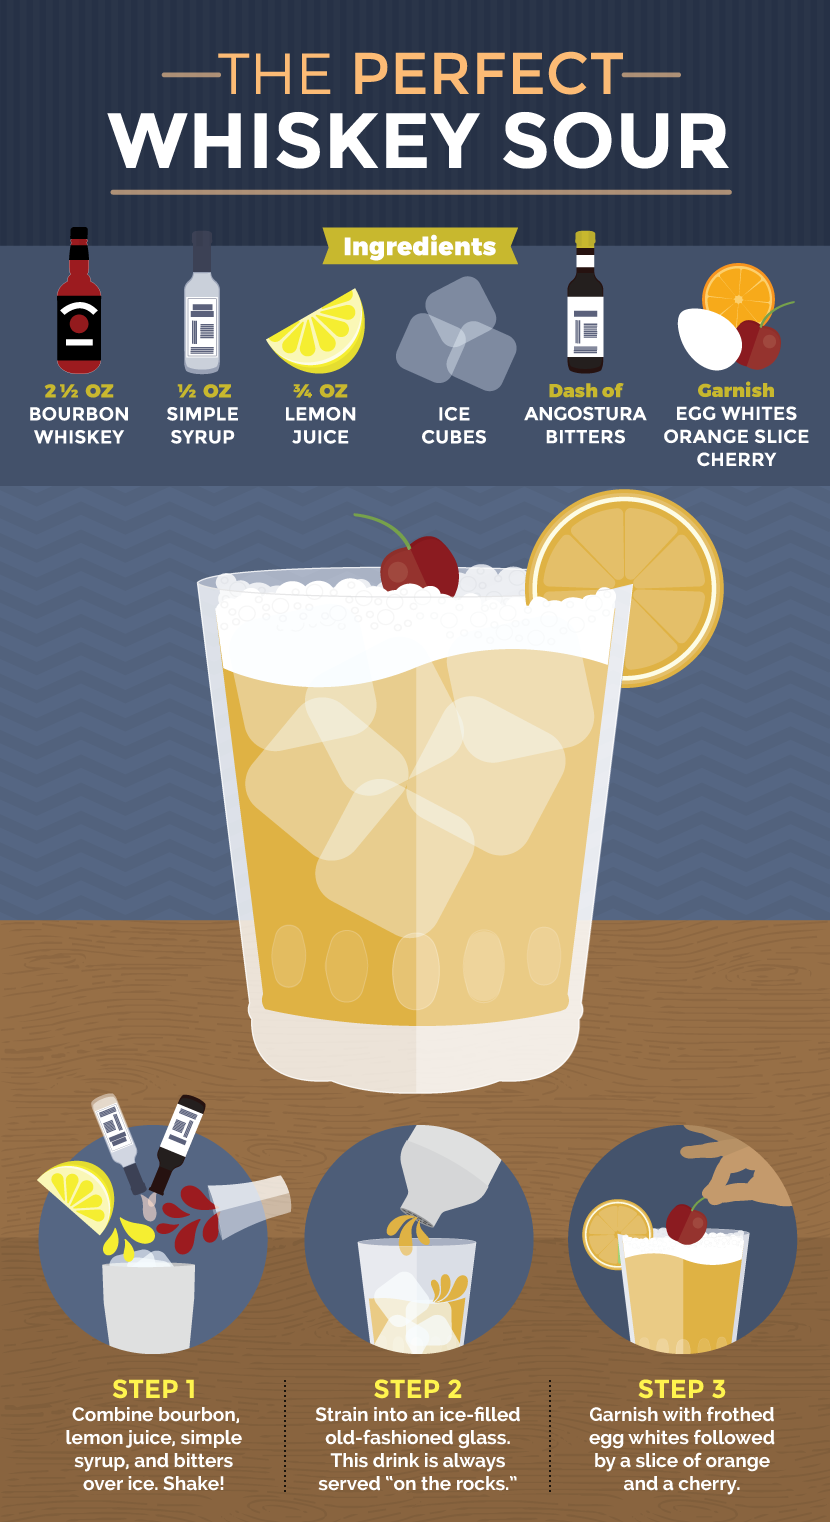 Making a Classic Whiskey Sour